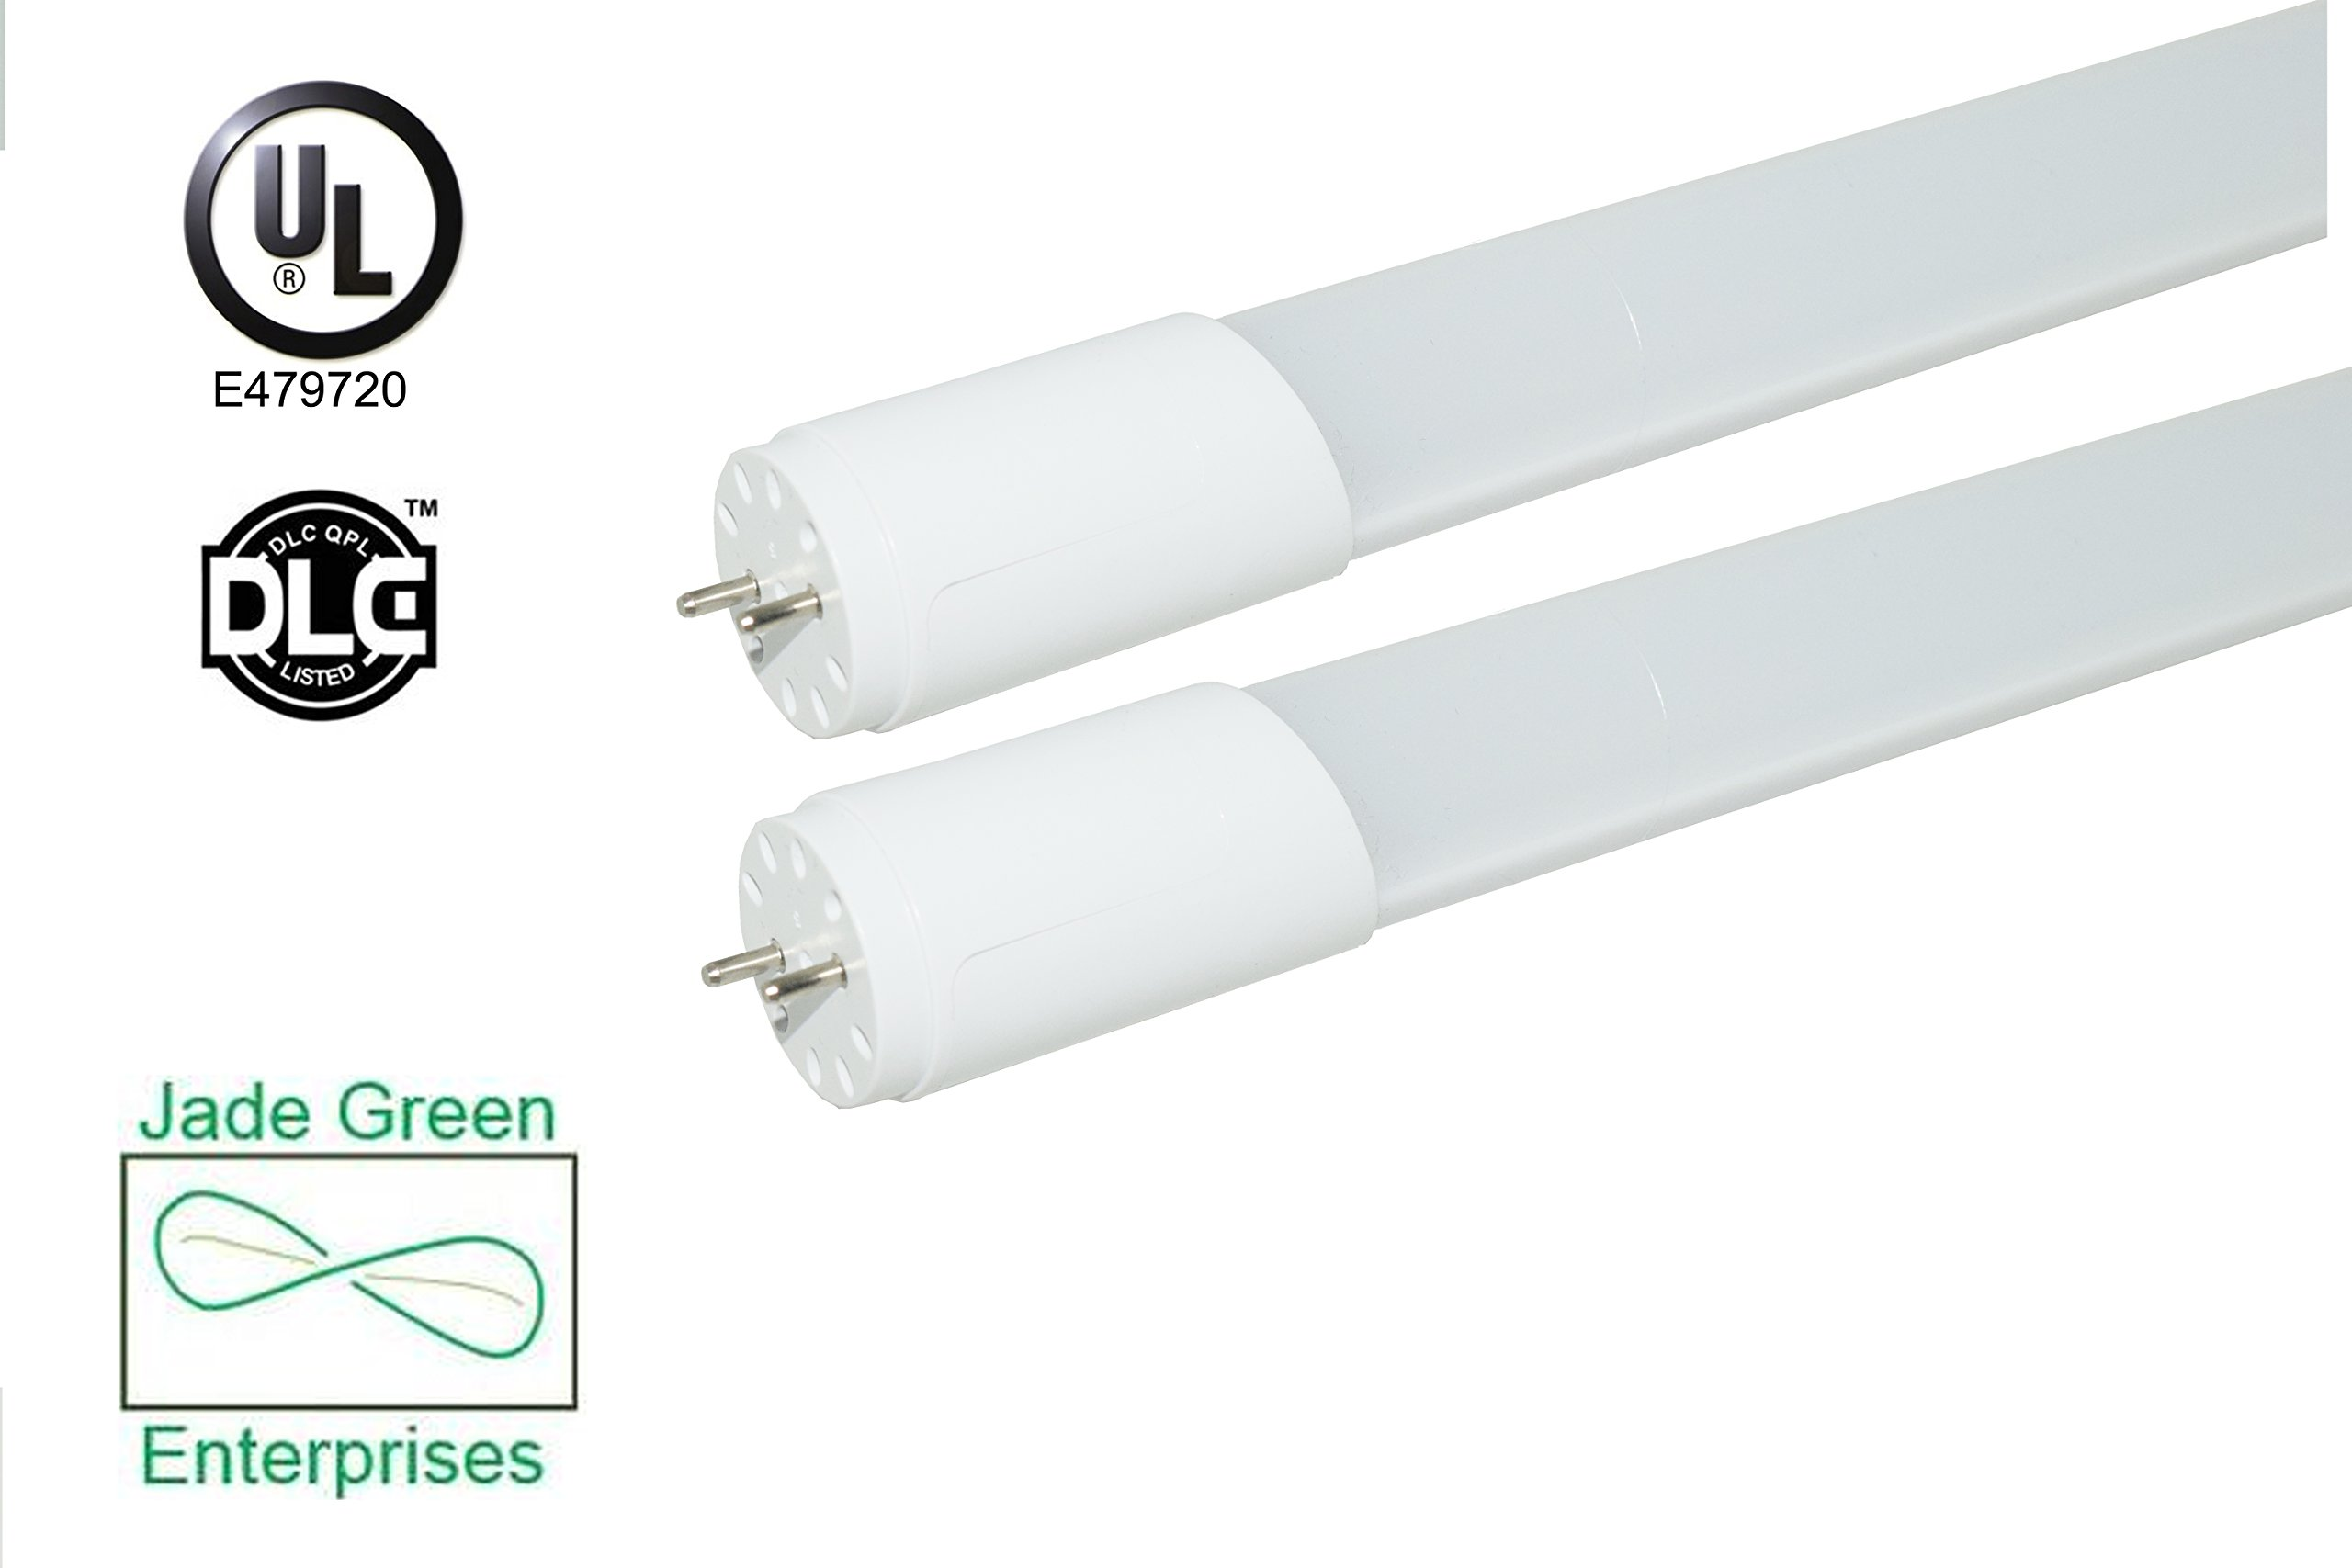 2 Foot T8 LED Tube Light 9 W 2 Pack, 3000K (Warm), 1080 Lumens (120 Lm/W), Single End Power, UL Listed, DLC Listed